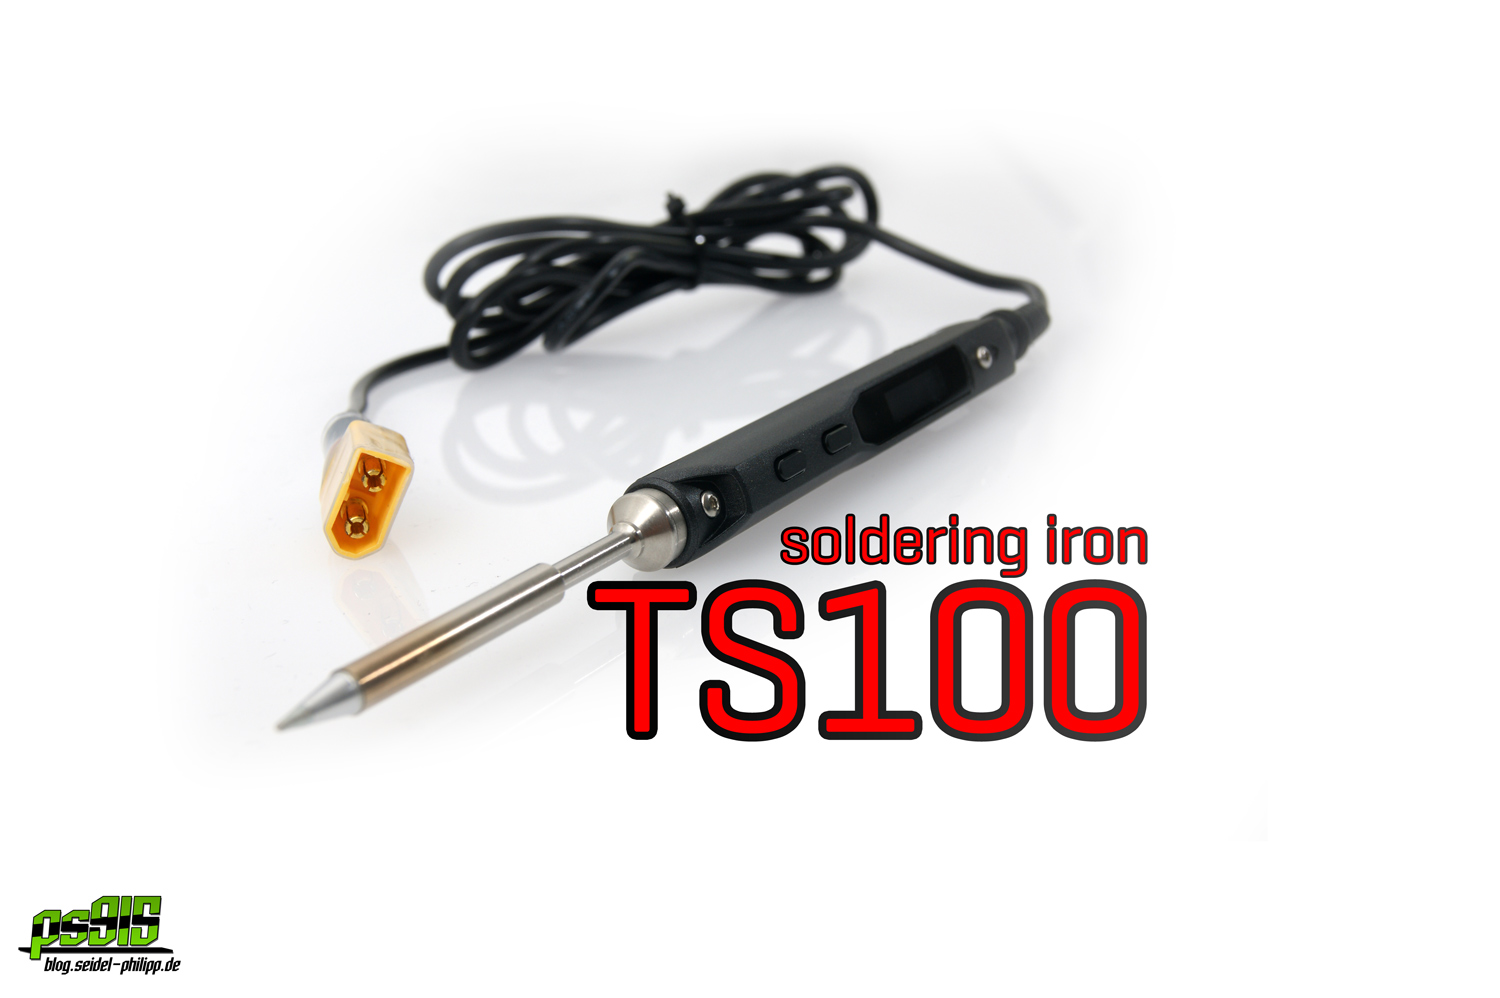 TS100 - portable soldering iron